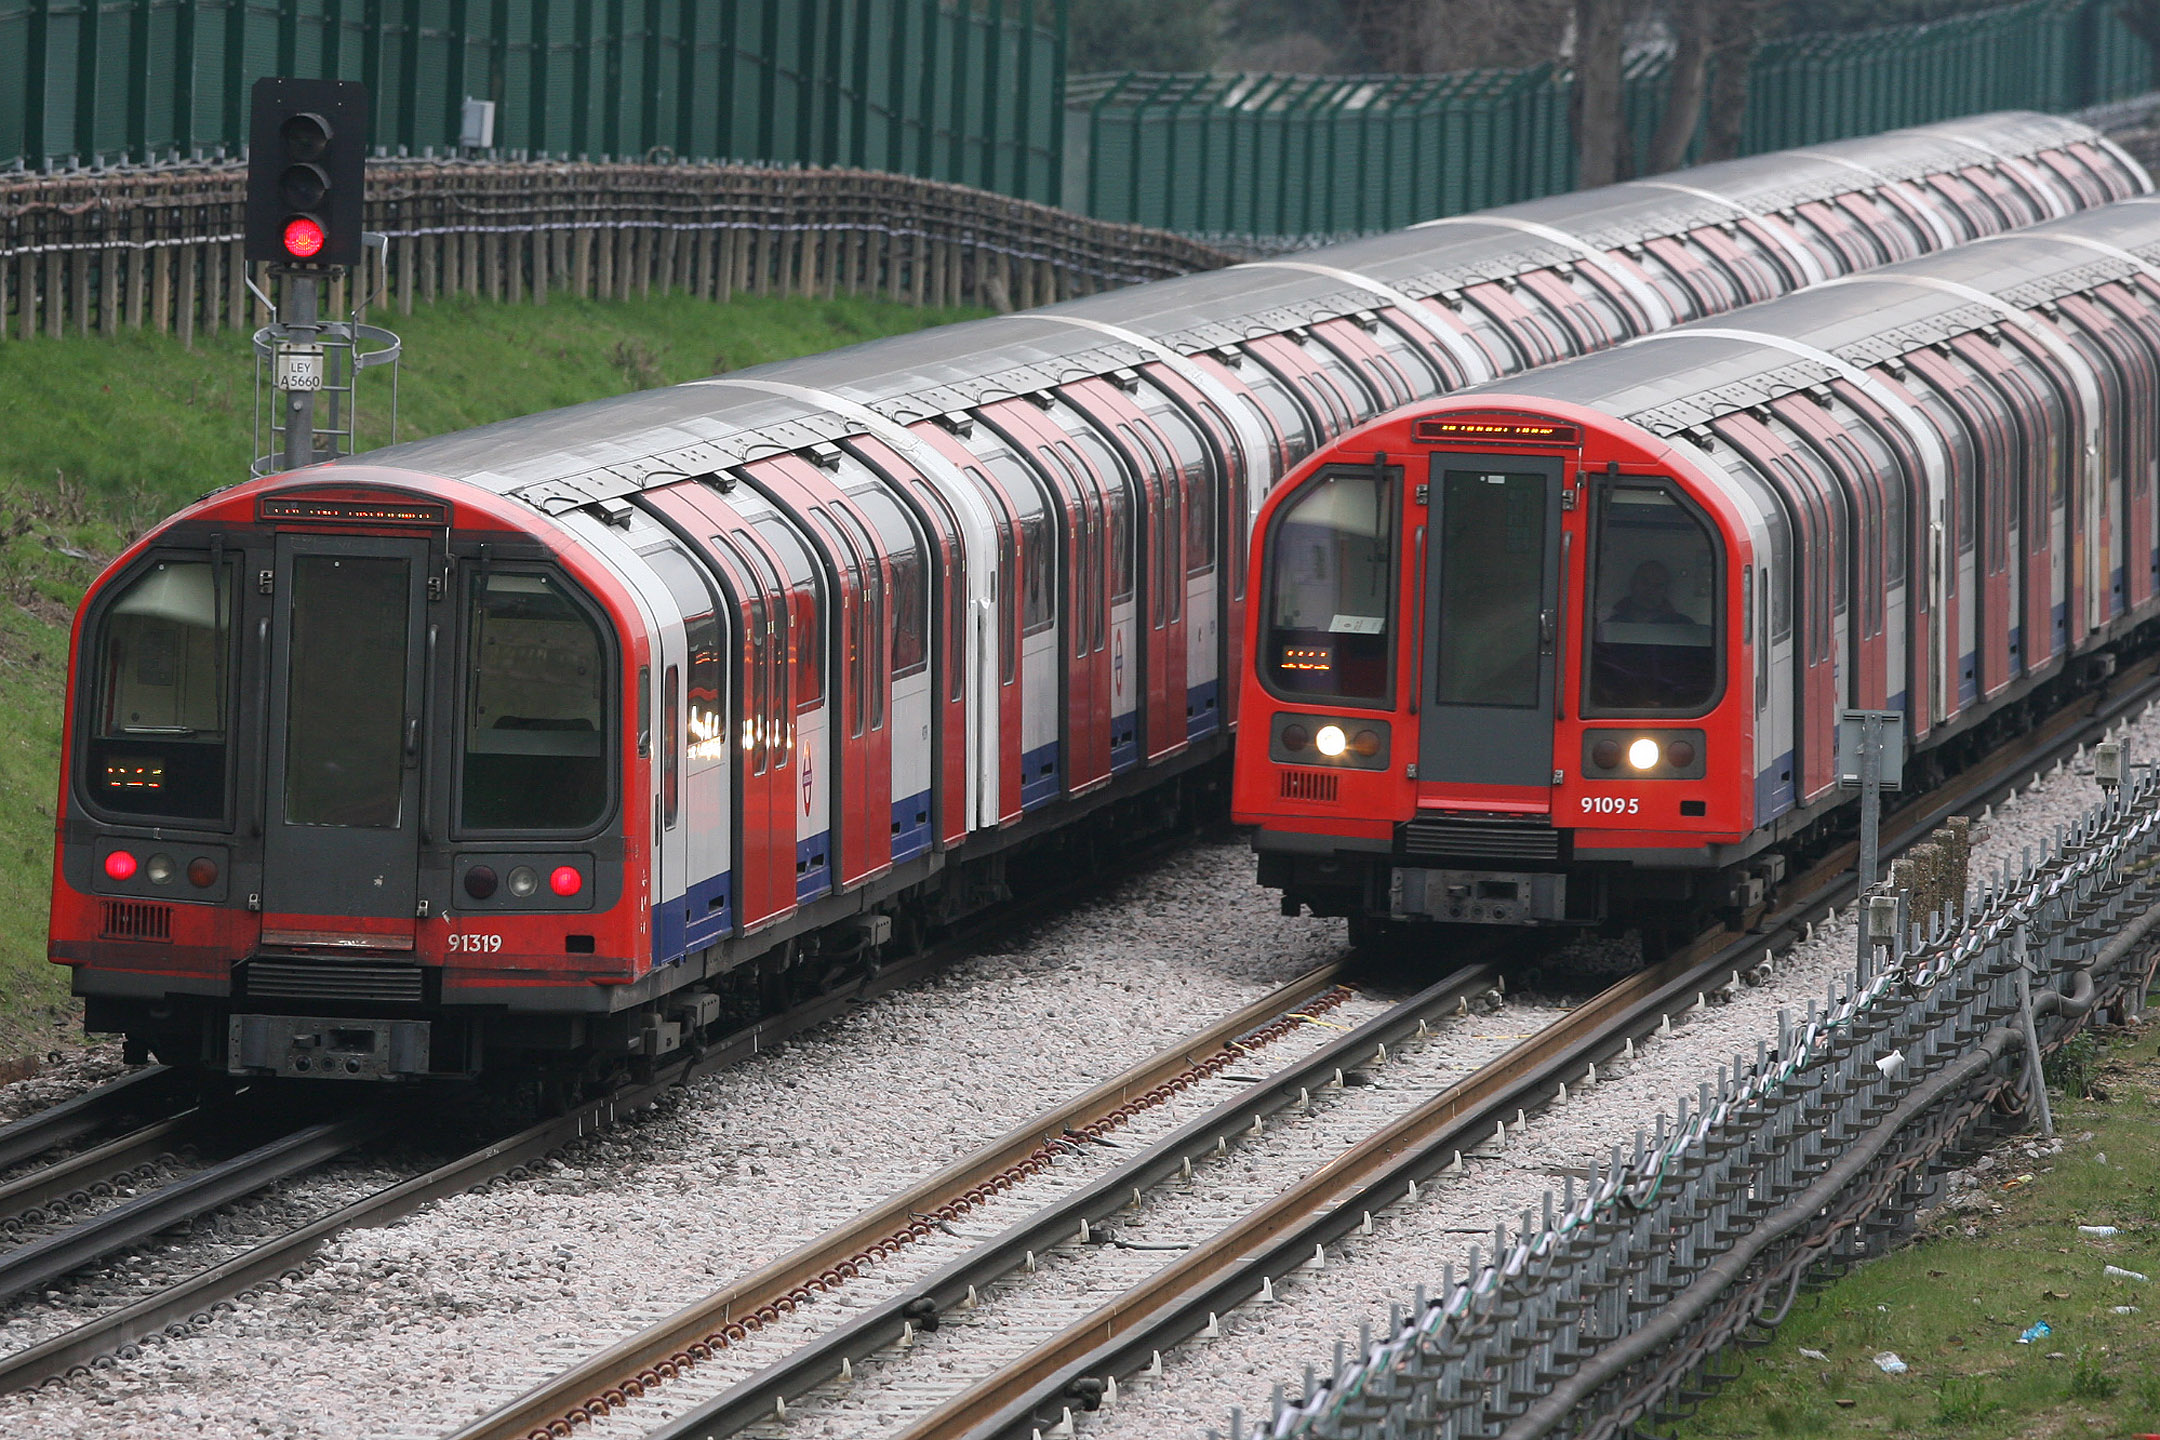 The Central line has been hit by suspensions